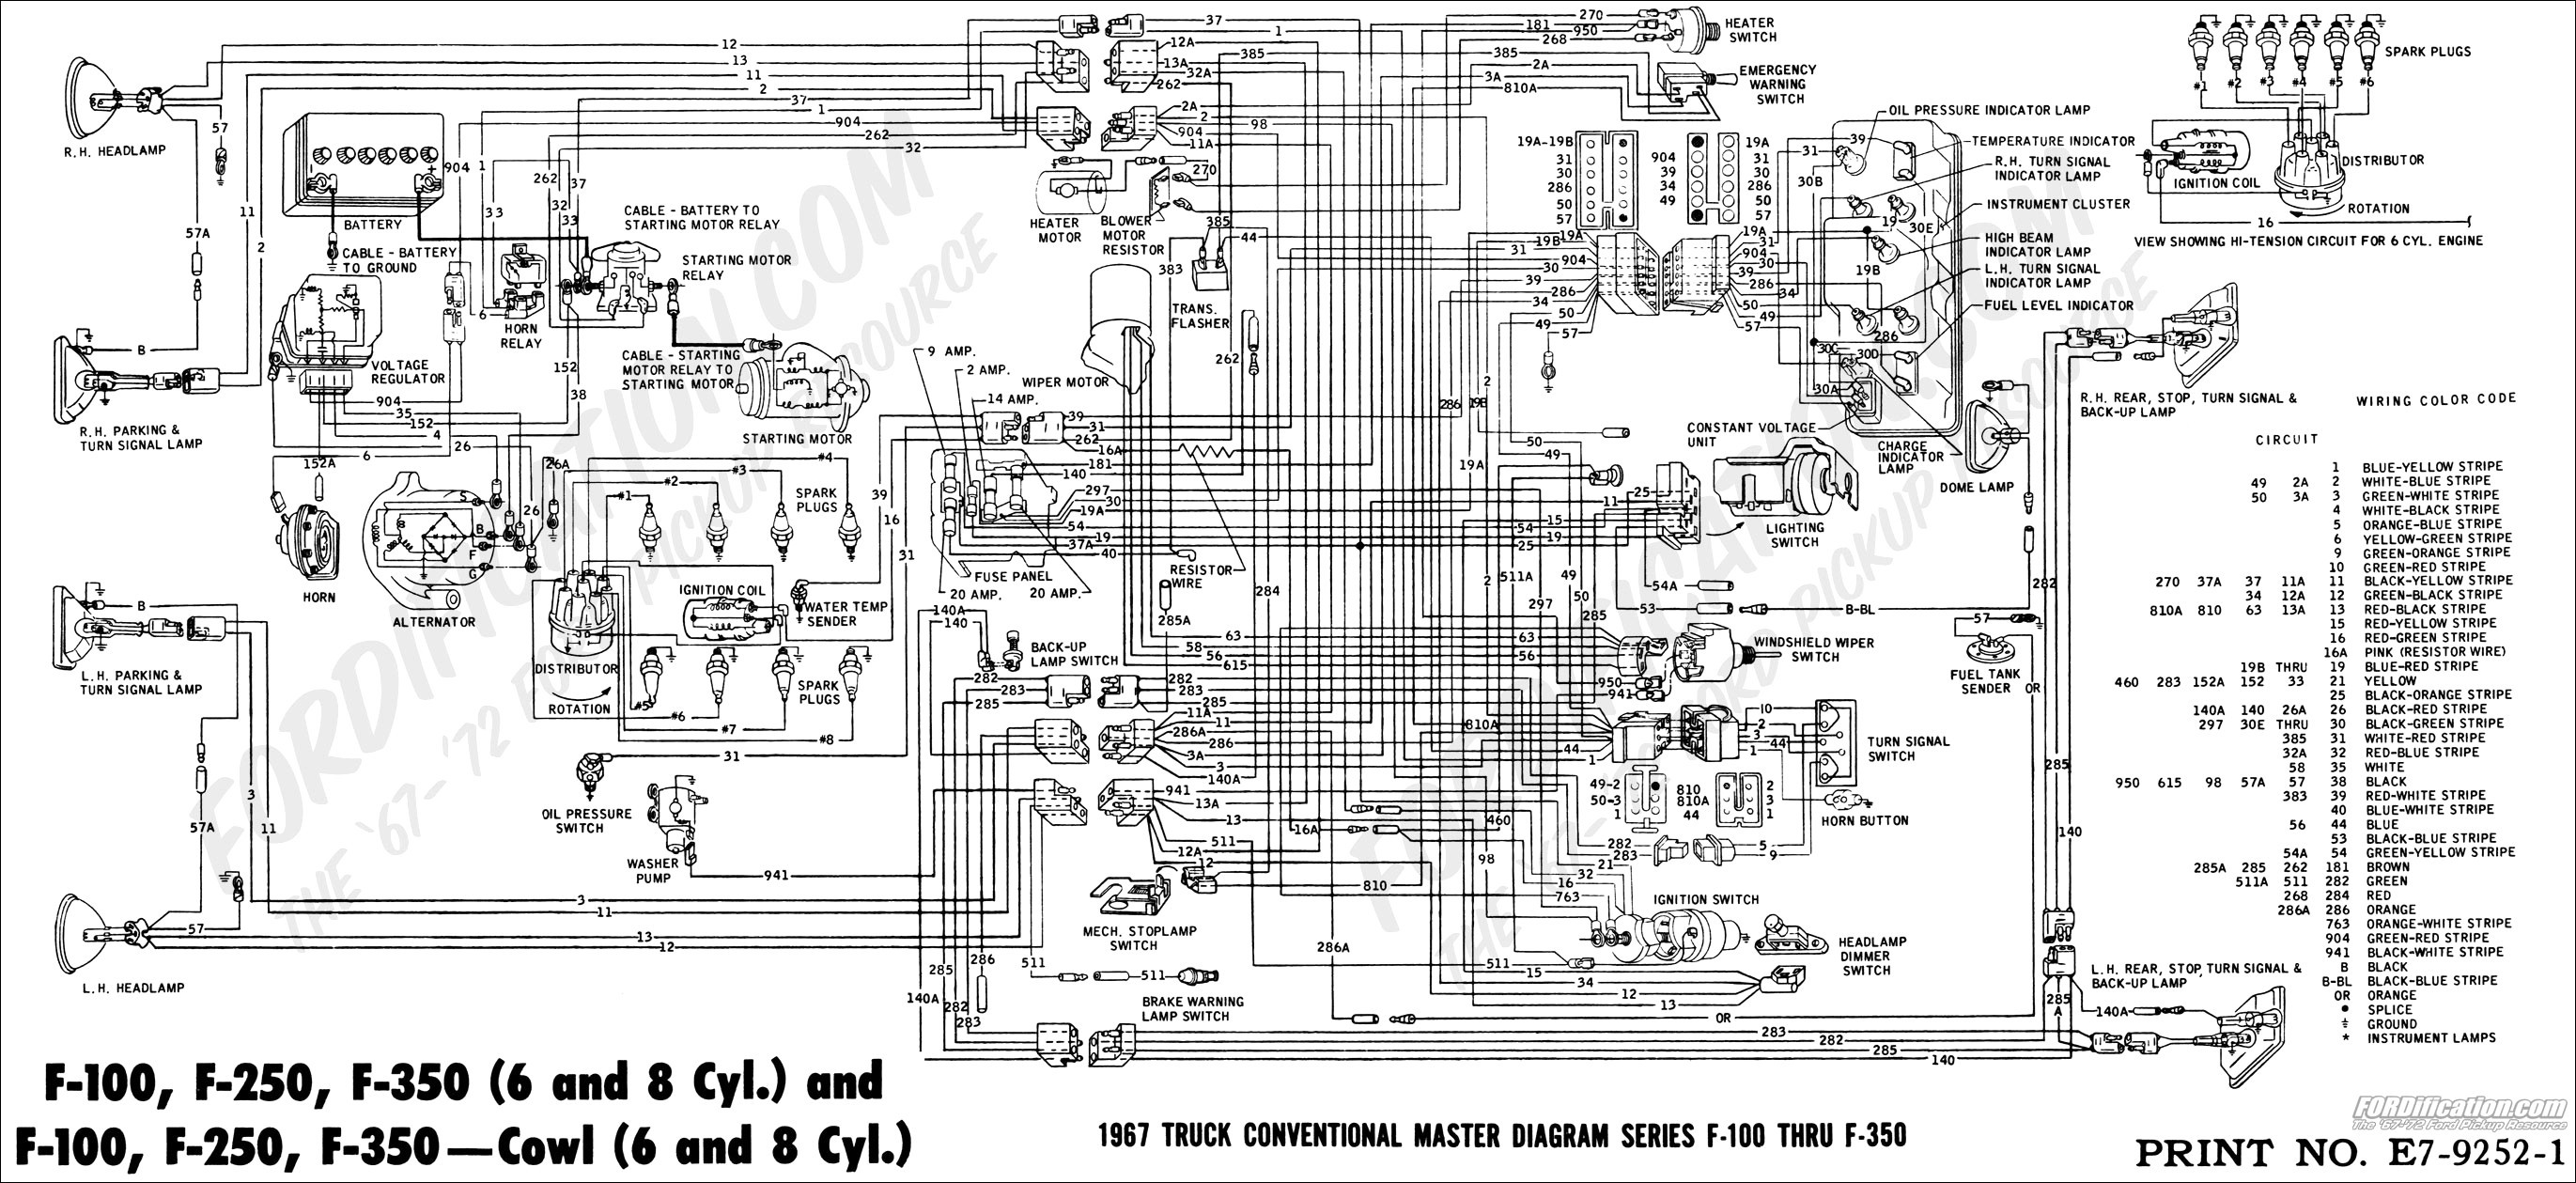 1988 ford alternator wiring diagram on 1976 ford f 150 truck wire rh daniablub co Ford Alternator Circuit Ford Truck Alternator Diagram